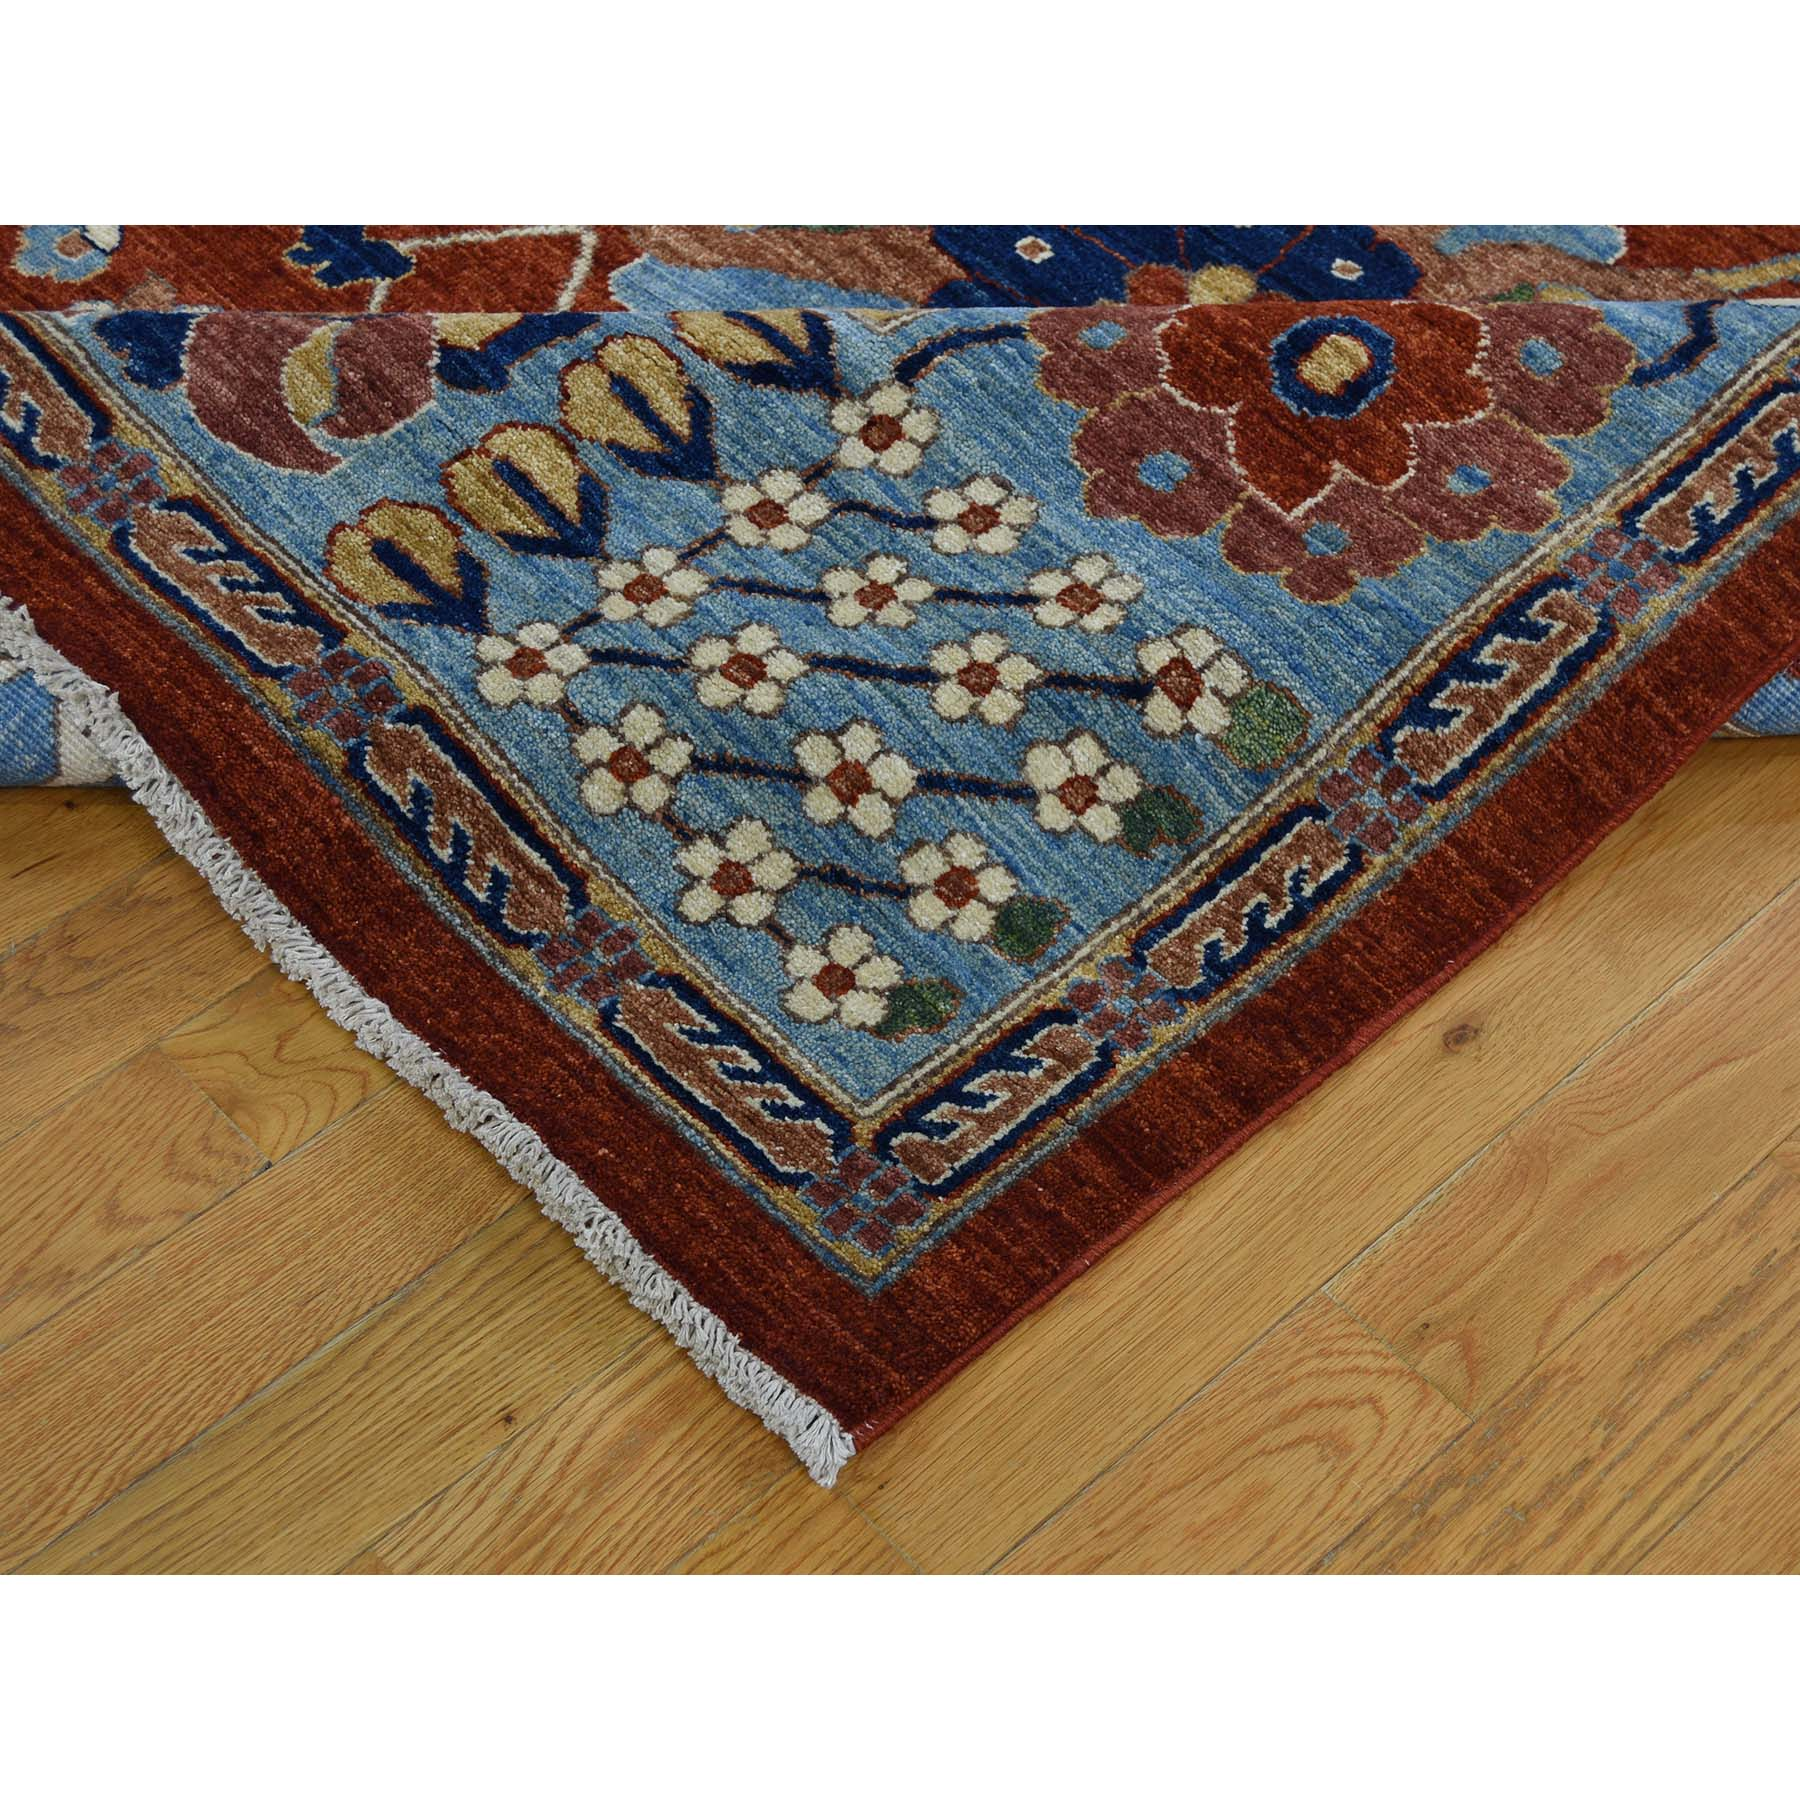 9-4 x 11-9- Hand-Knotted Peshawar Mahal Design With Wide Border Oriental Rug